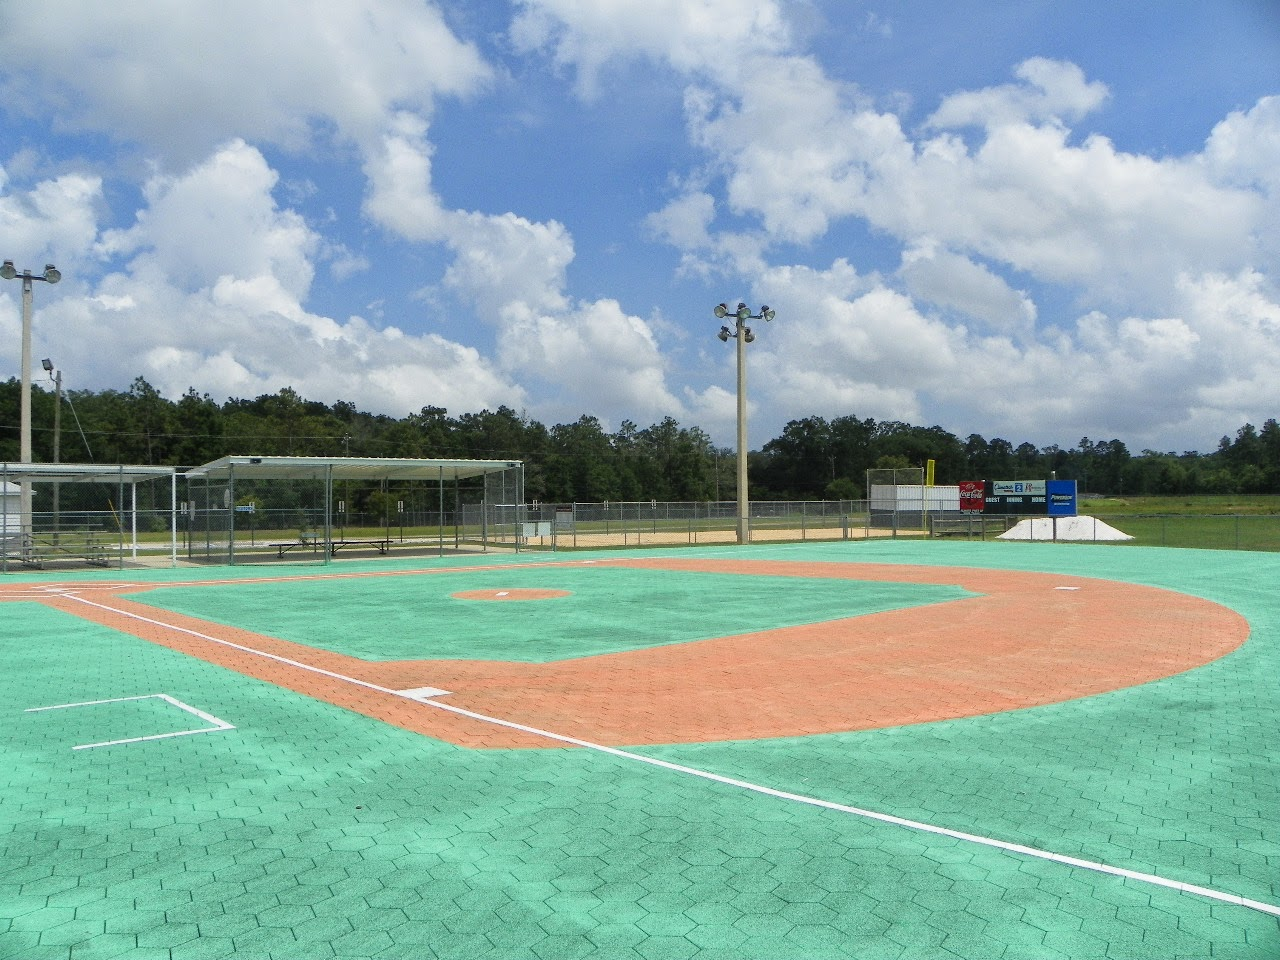 Mitchell Homes Miracle League Park in Northeast Pensacola, FL 32514